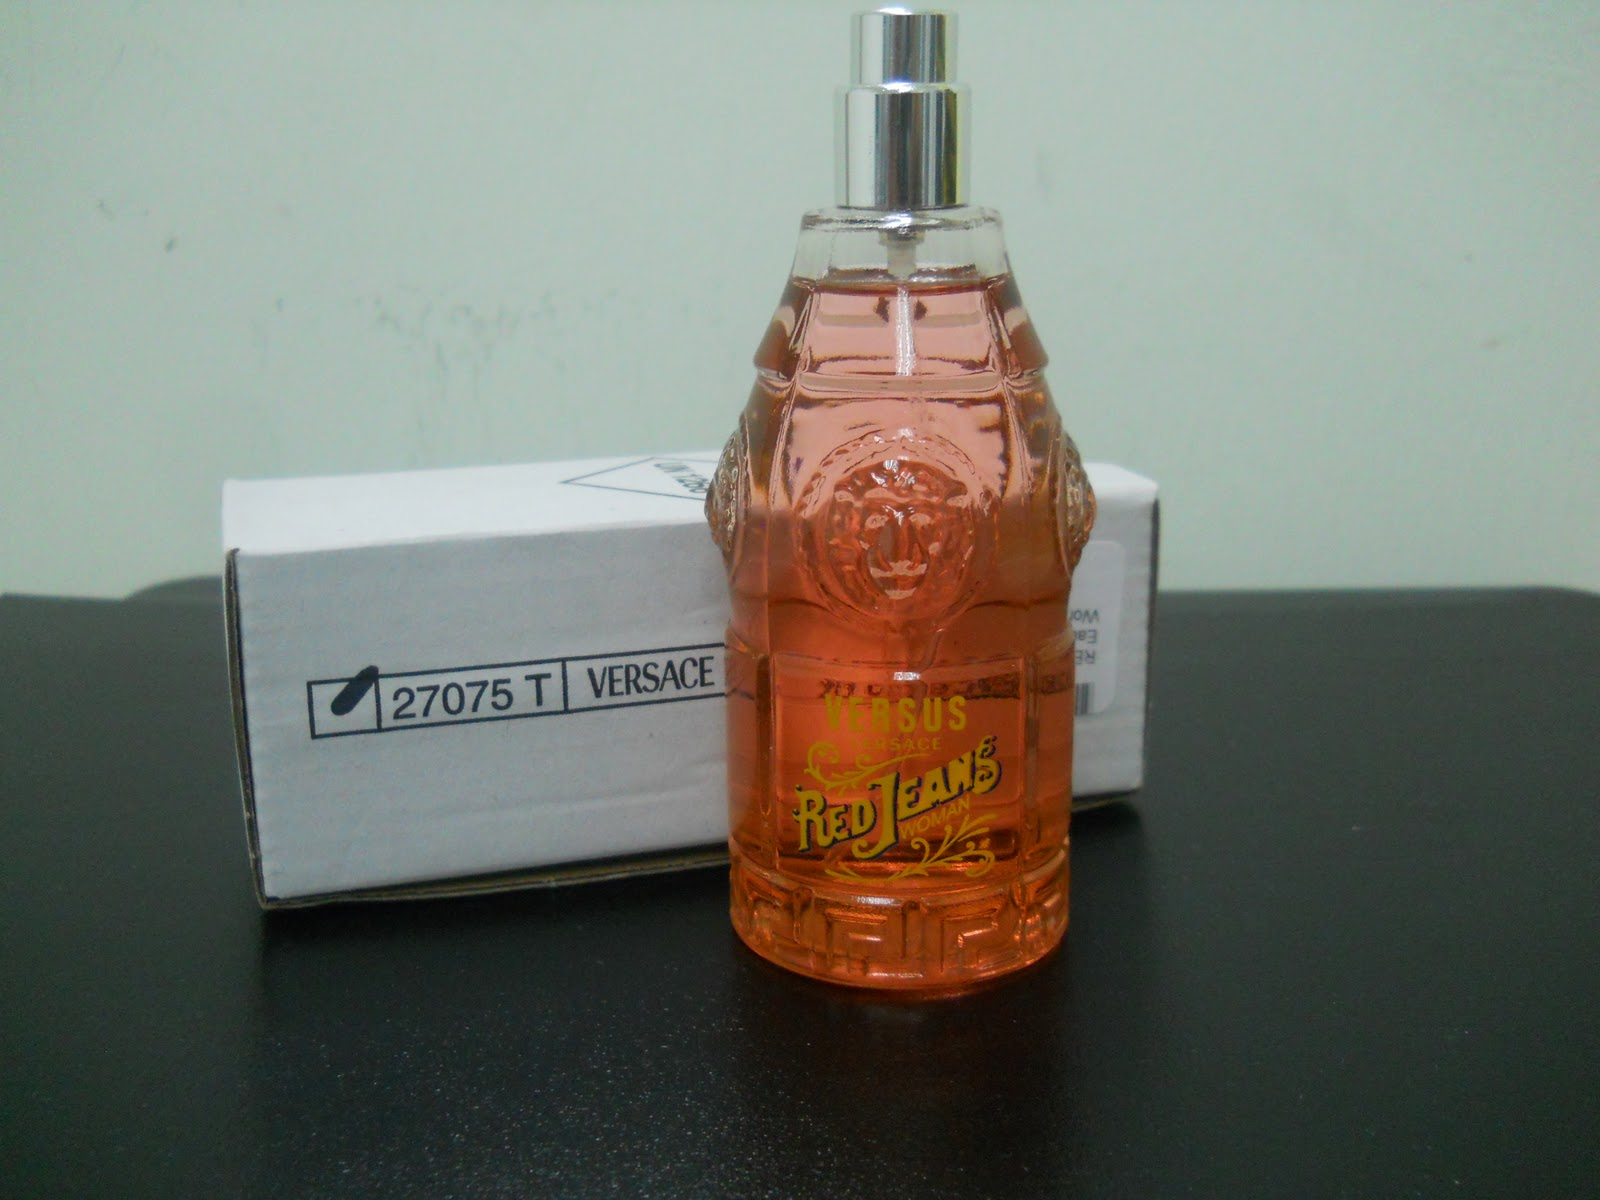 versace red jeans perfume price malaysia | Peritec Biosciences LTD.